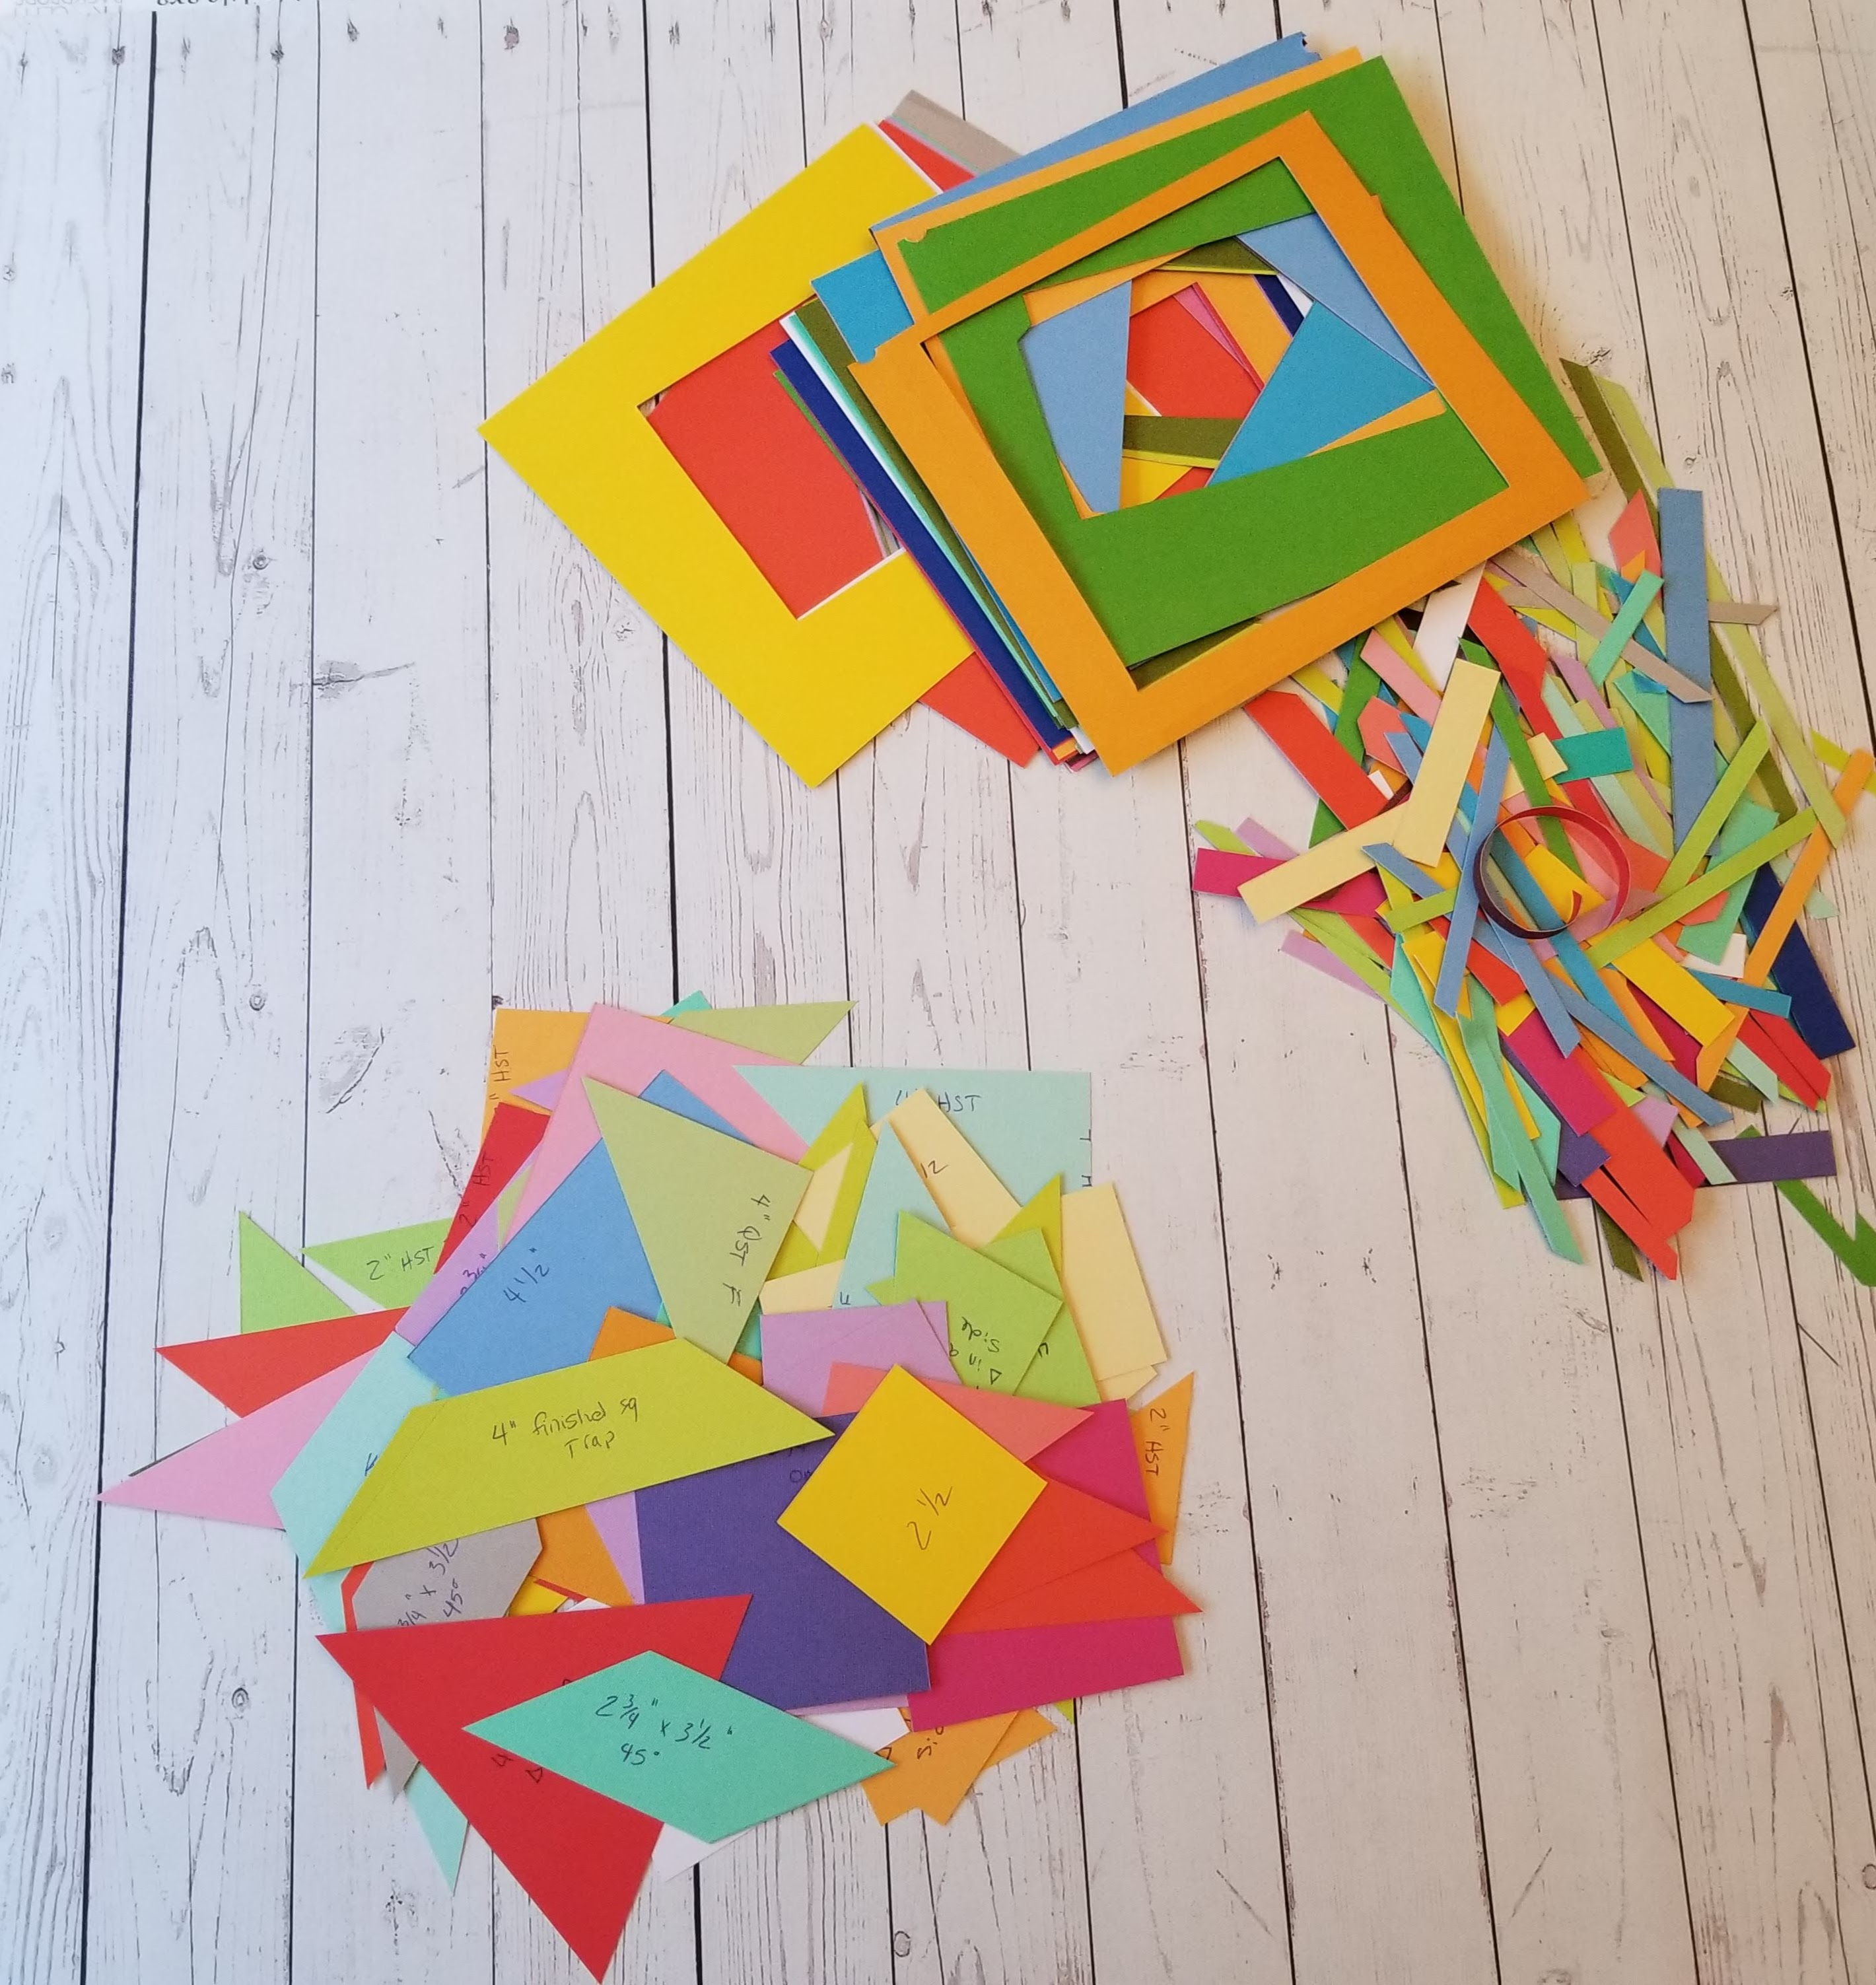 Multicolored shapes next to paper scraps on wood backdrop